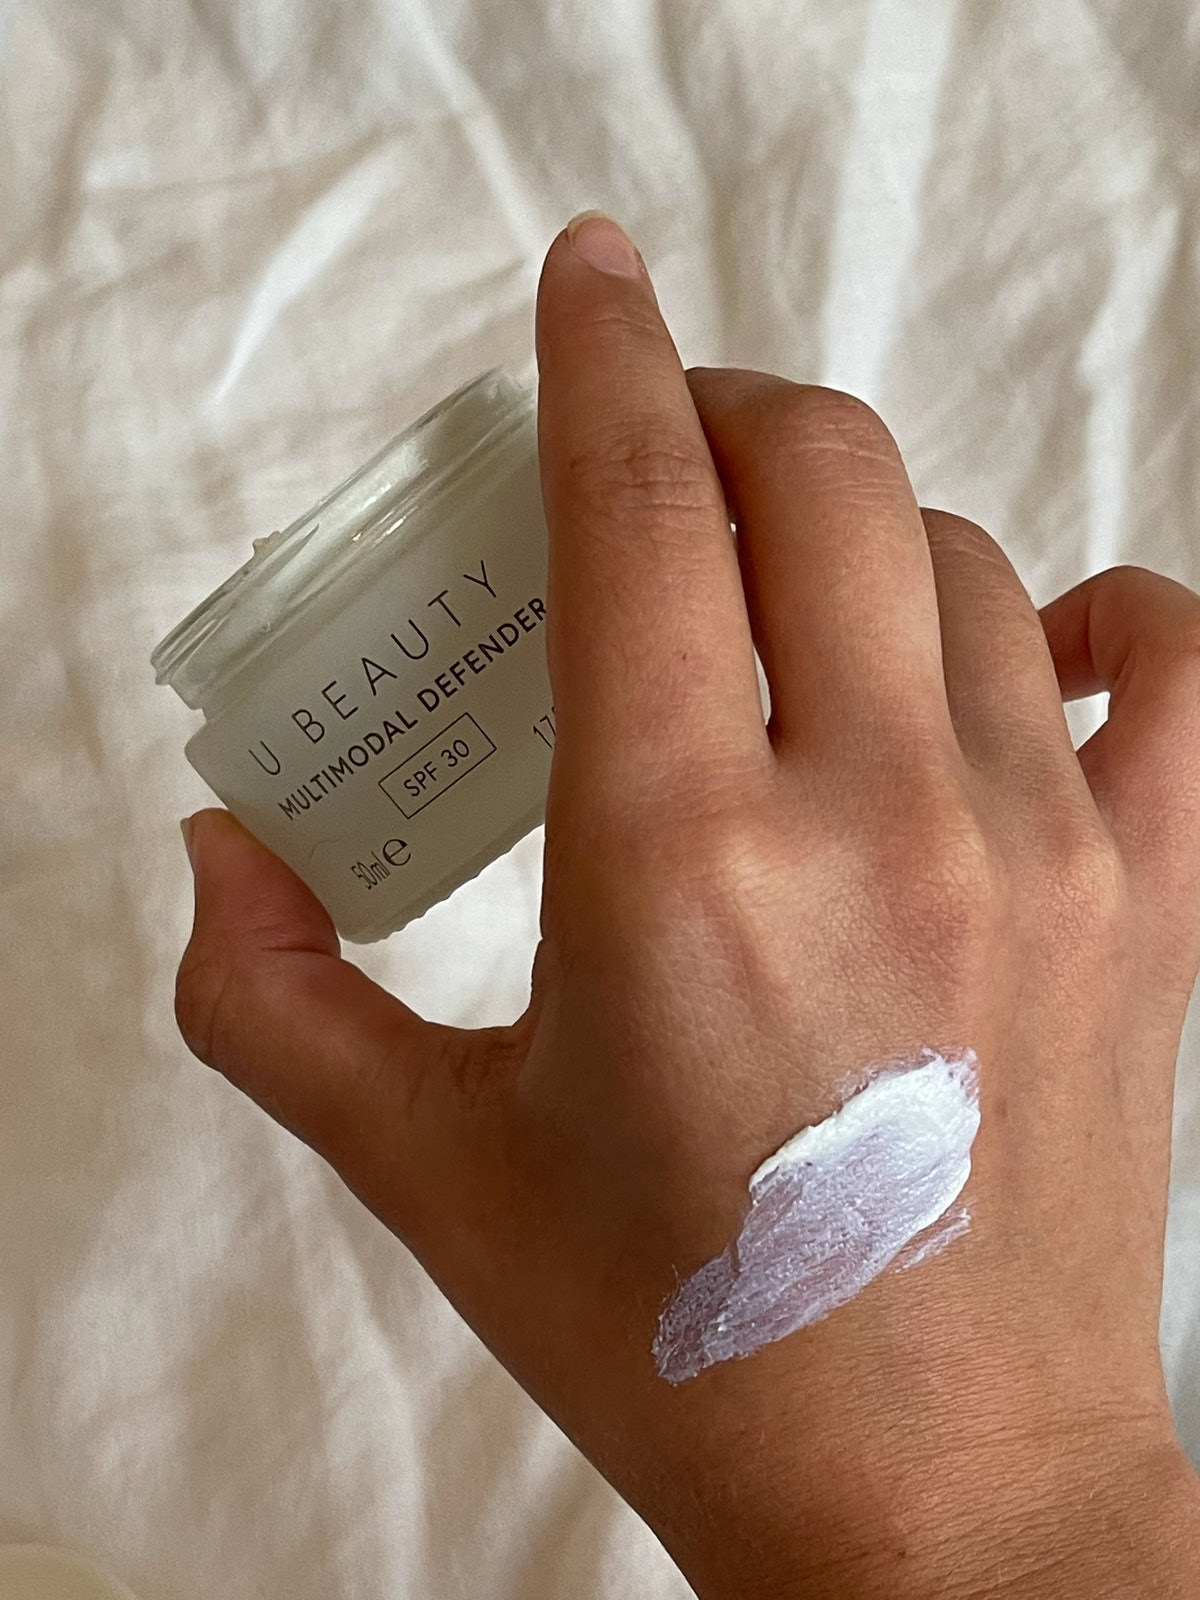 The sunscreen swatched on Isabella's hand